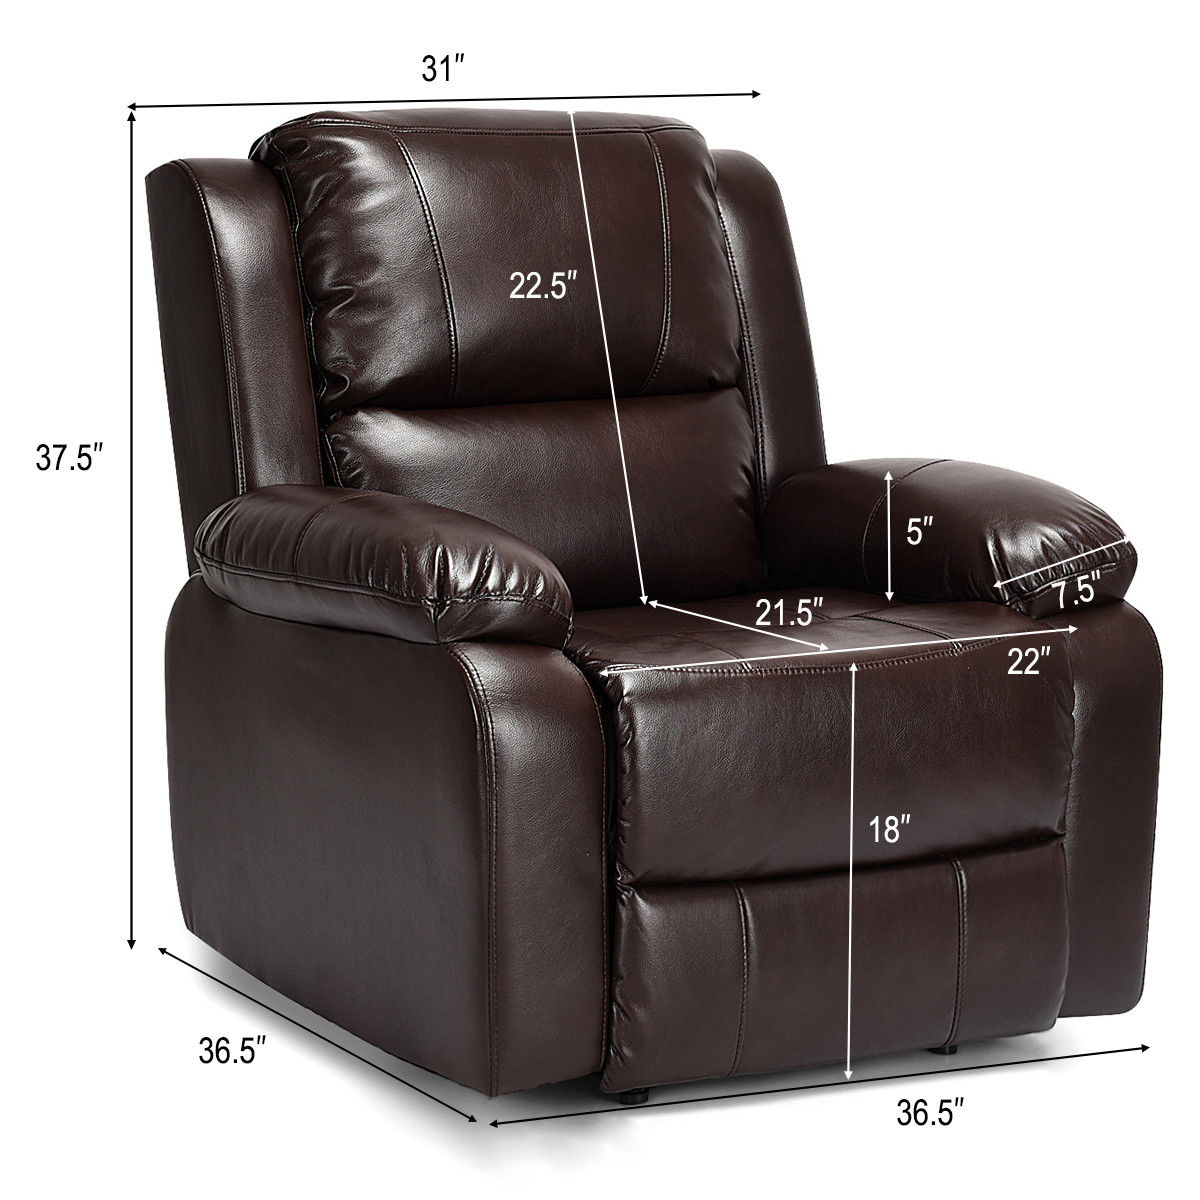 Strange Costway Manual Recliner Sofa Lounge Chair Pu Leather Home Theater Padded Reclining Brown Spiritservingveterans Wood Chair Design Ideas Spiritservingveteransorg